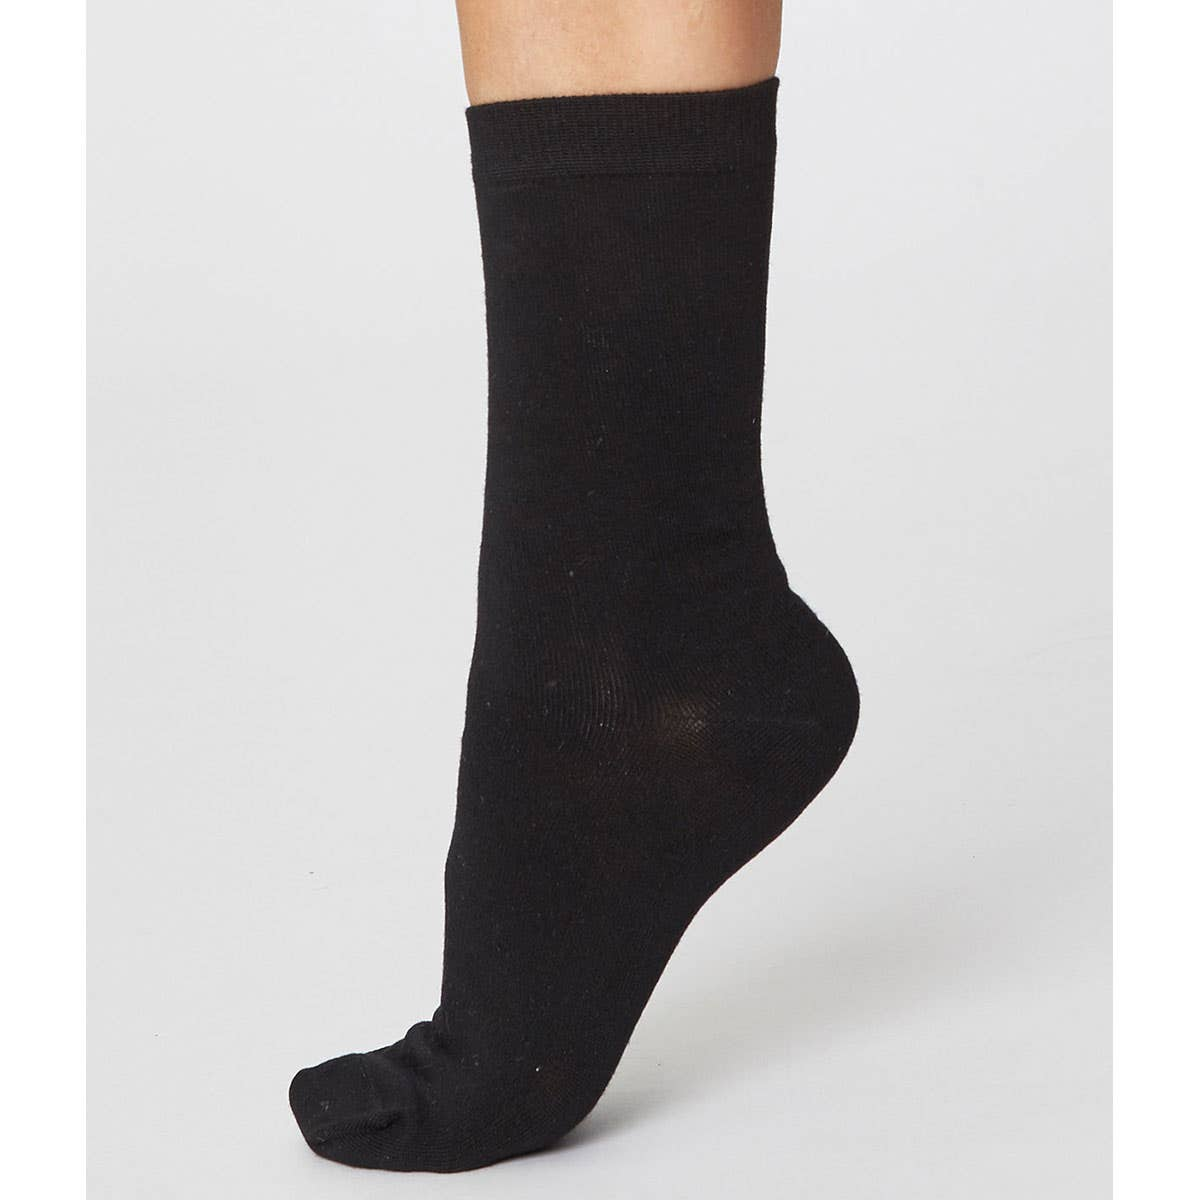 Thought Solid Jackie Black Soft Bamboo Women's Socks